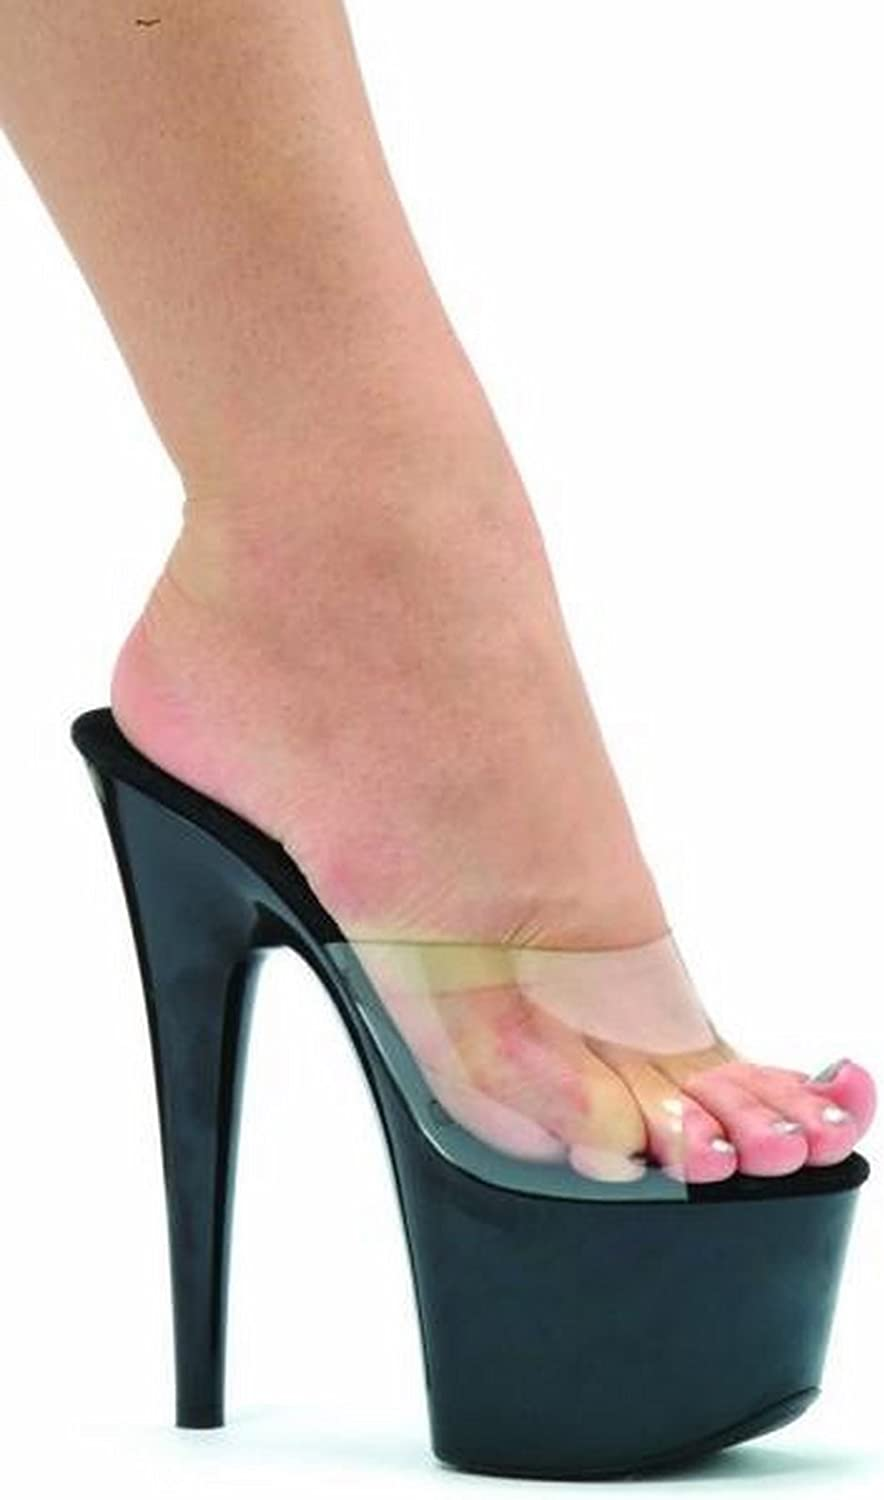 Ellie shoes 7 Inch Pointed Stiletto Mule Women'S Size shoes (Clear Black;8)